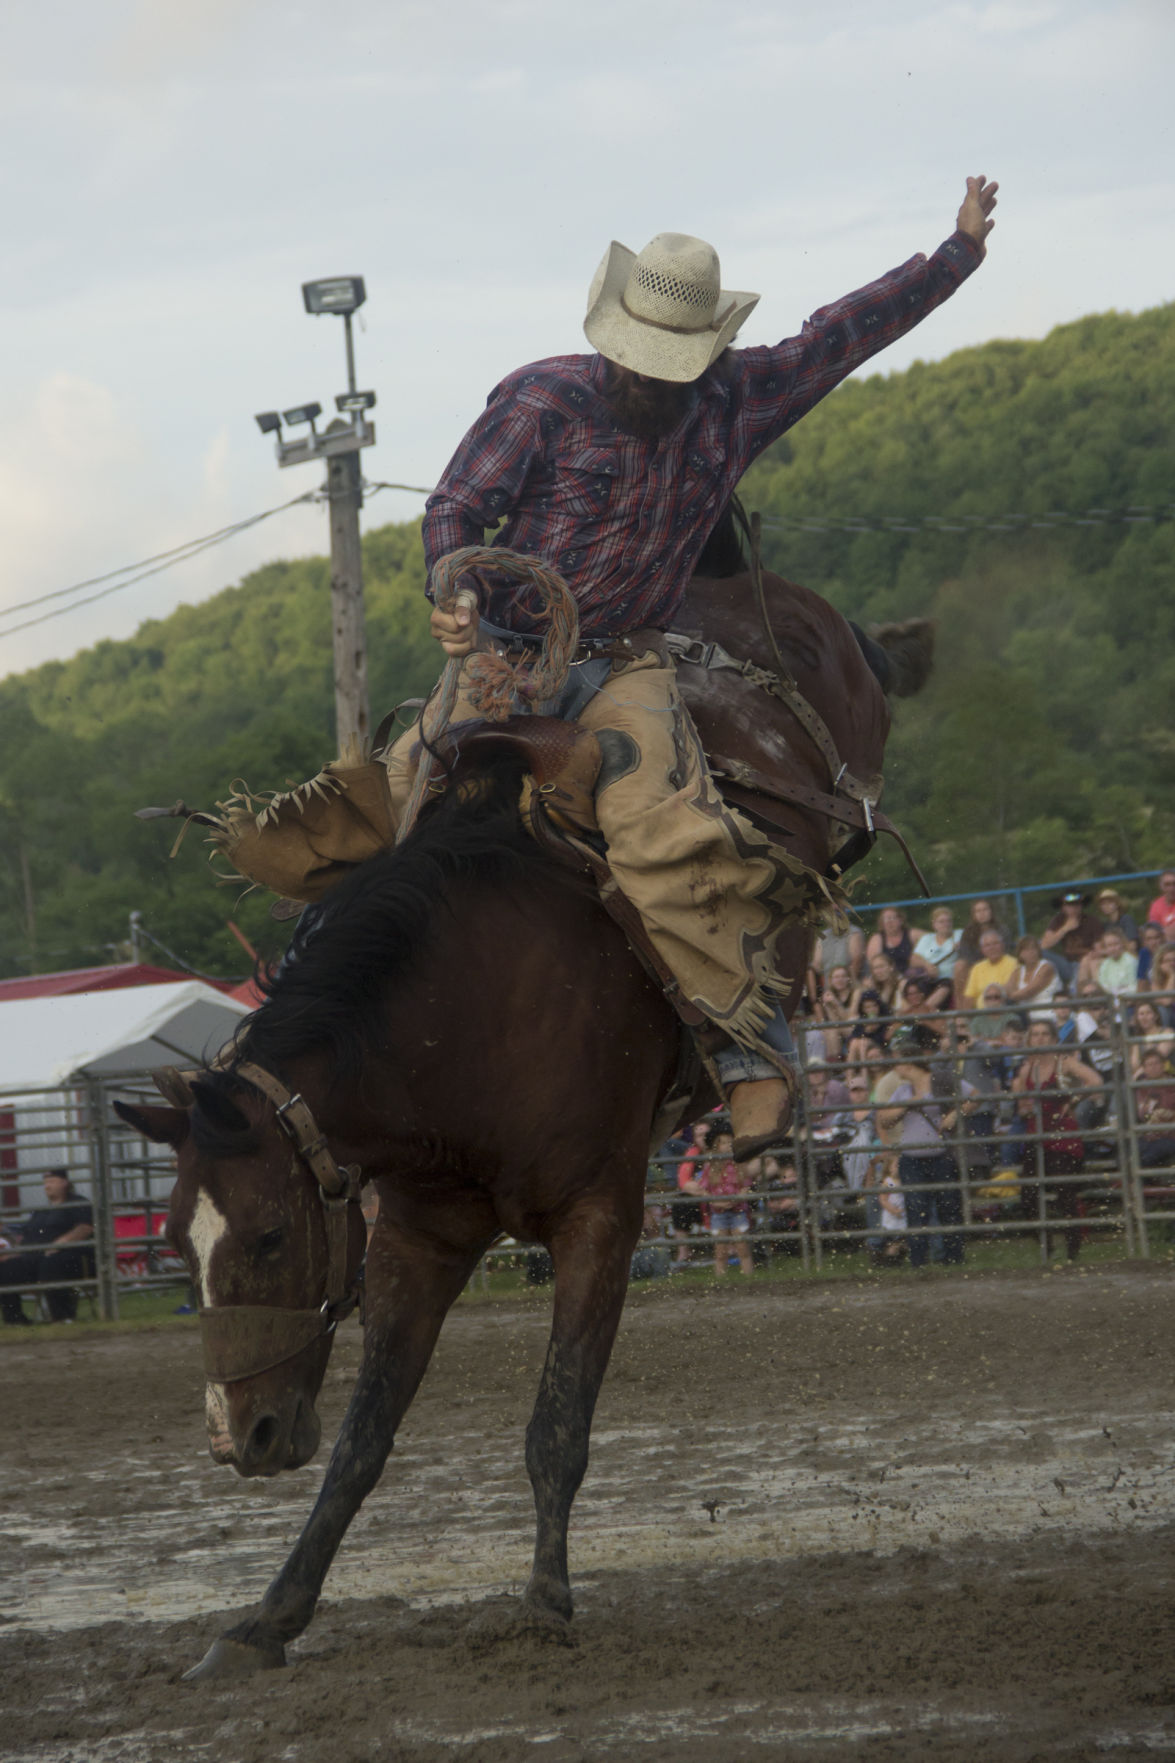 Ellicottville Championship Rodeo